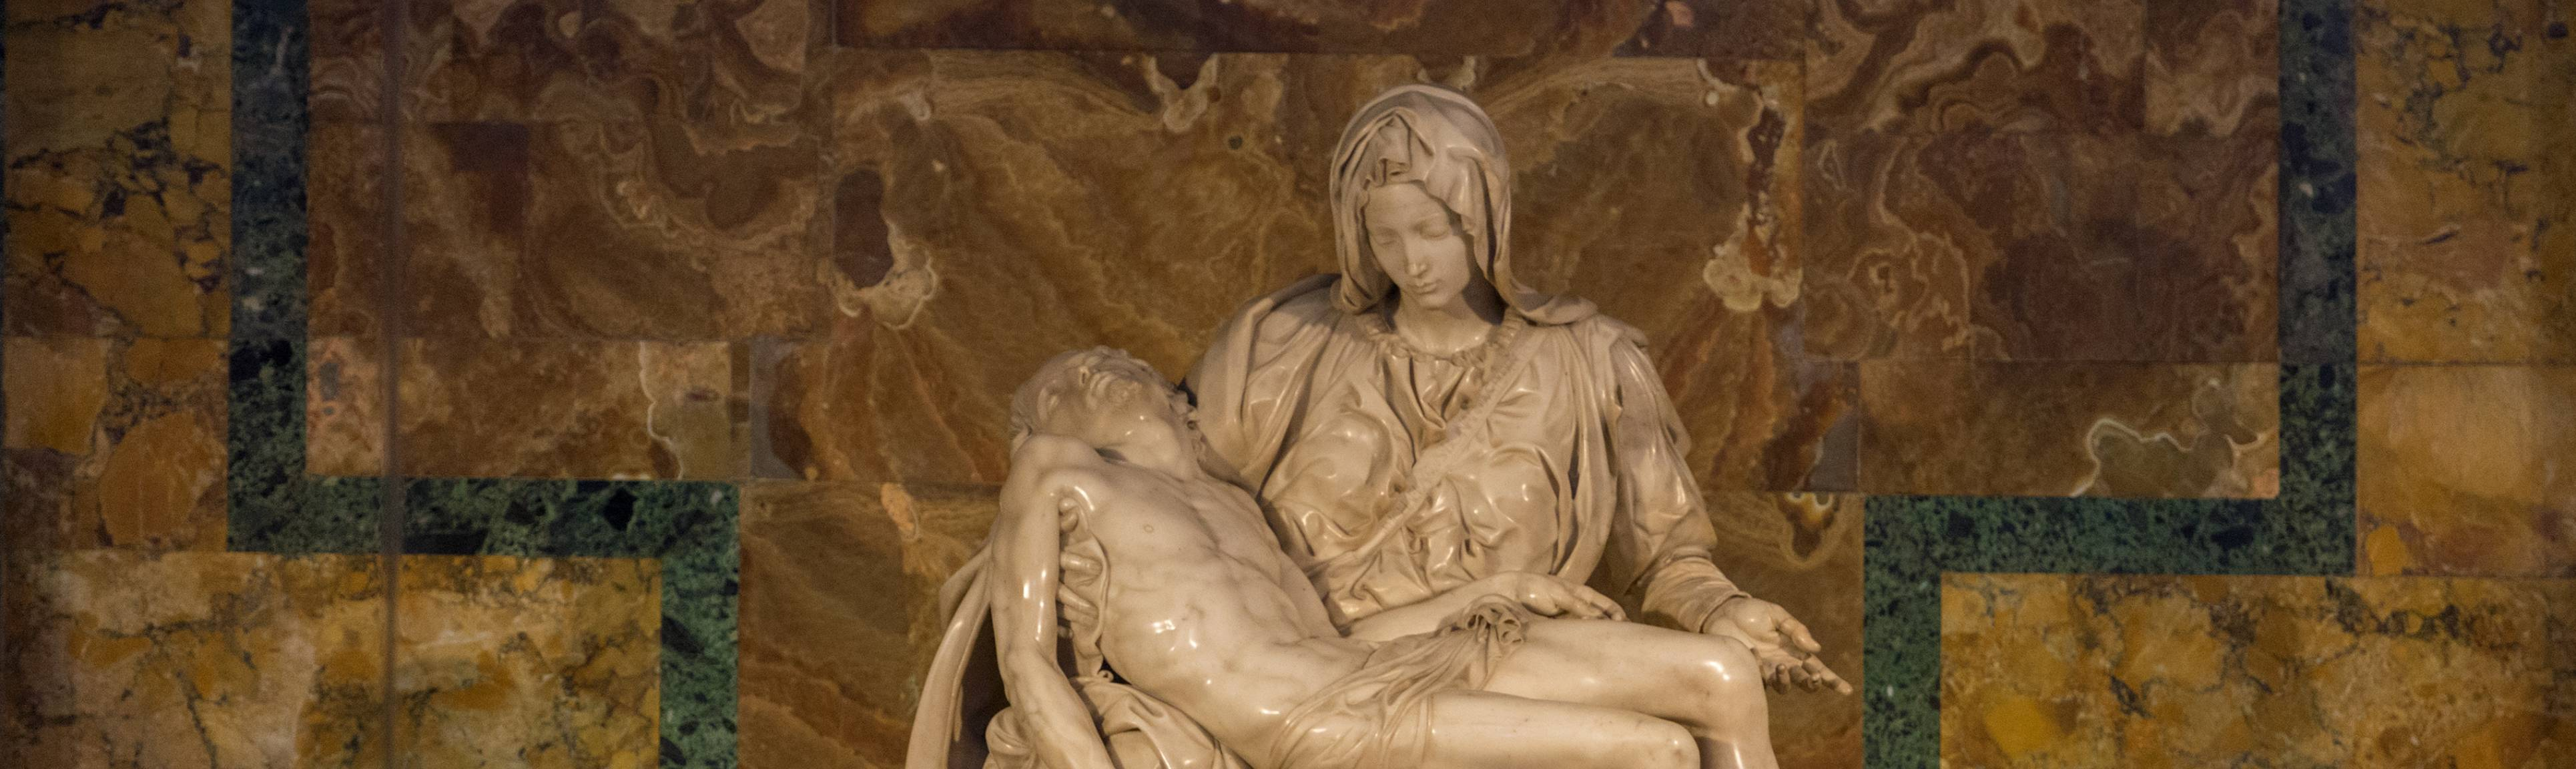 Mary holding Jesus' body, detail from La Pieta at St. Peter's Basilica